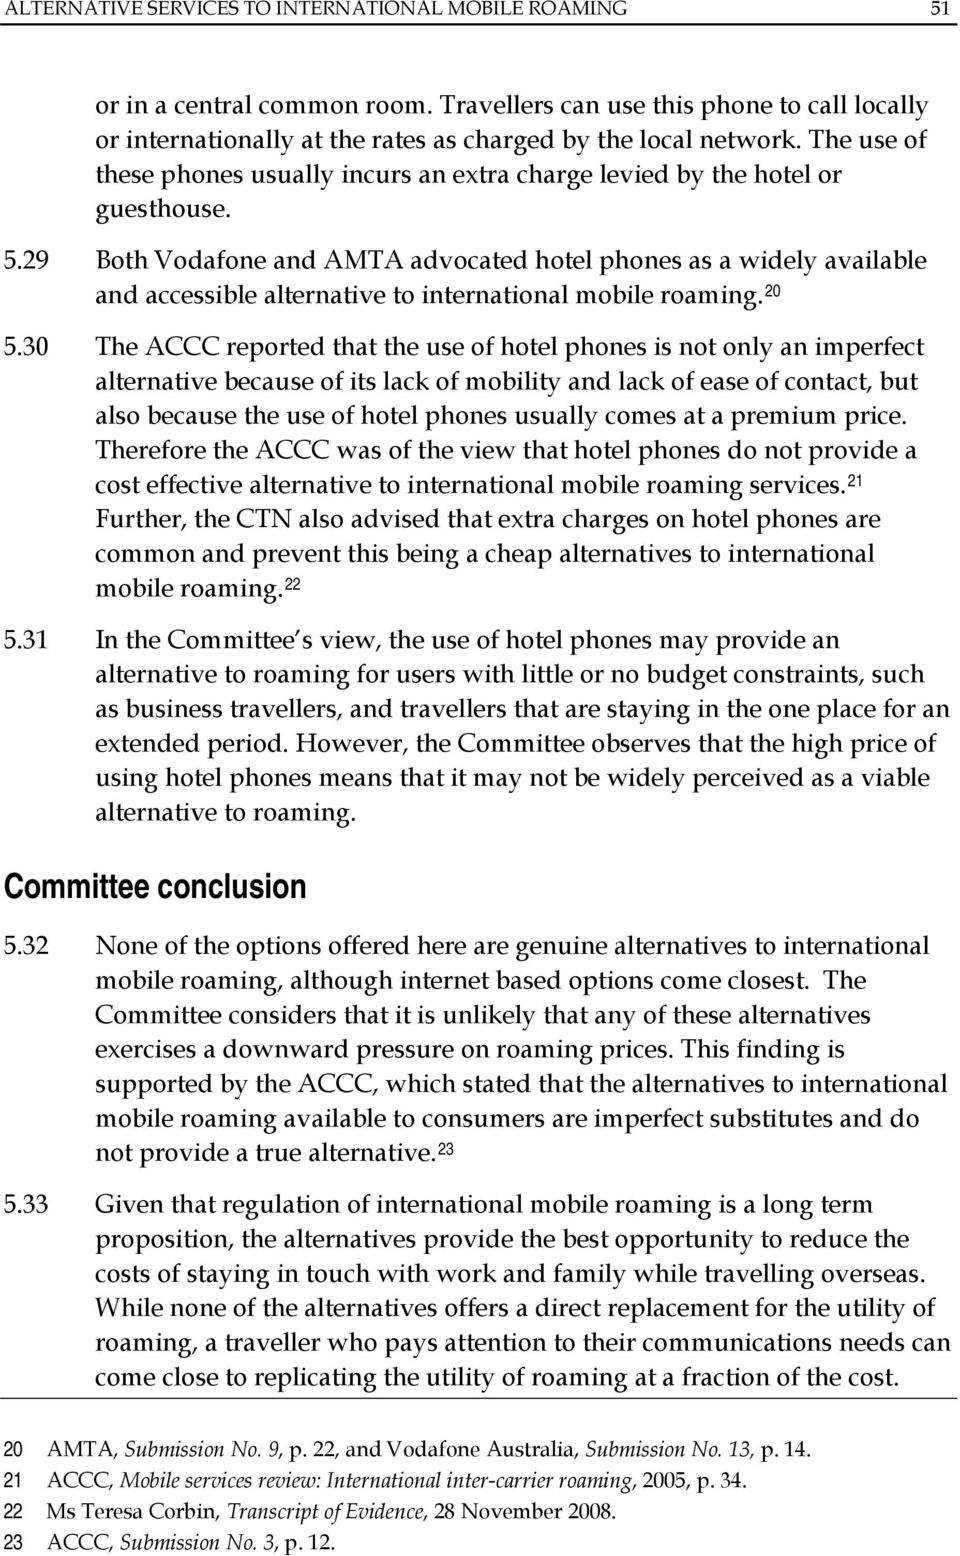 29 Both Vodafone and AMTA advocated hotel phones as a widely available and accessible alternative to international mobile roaming. 20 5.